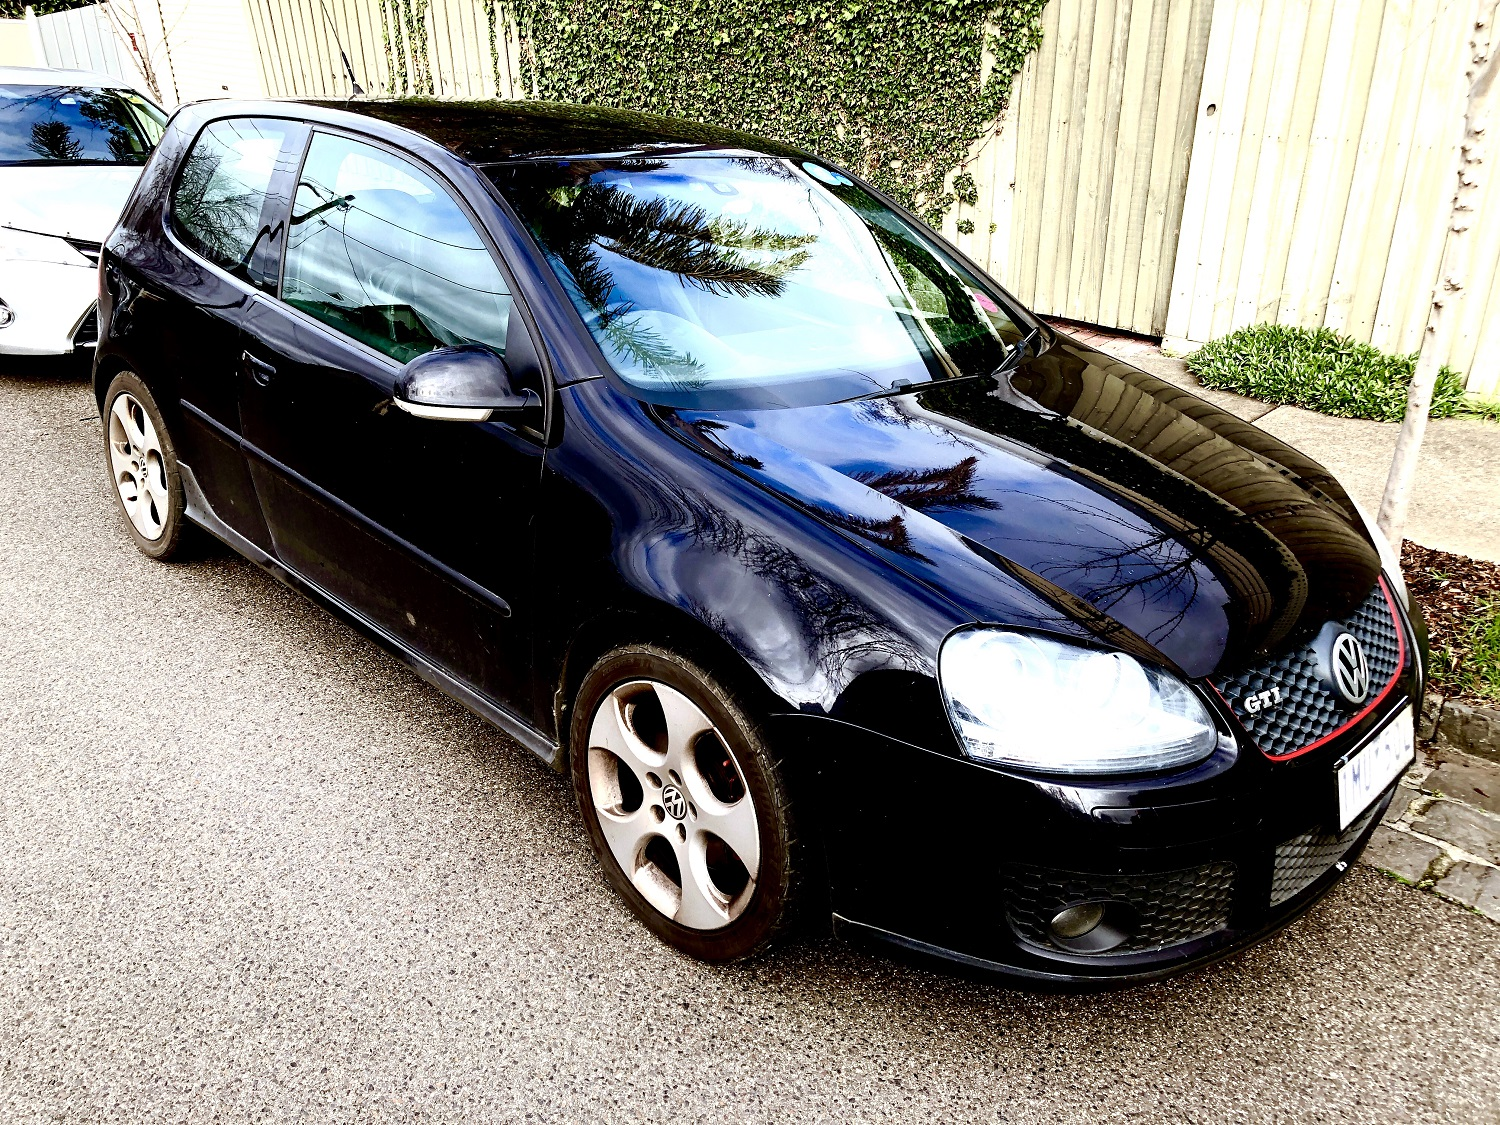 Picture of Briege's 2007 Volkswagen Golf GTI